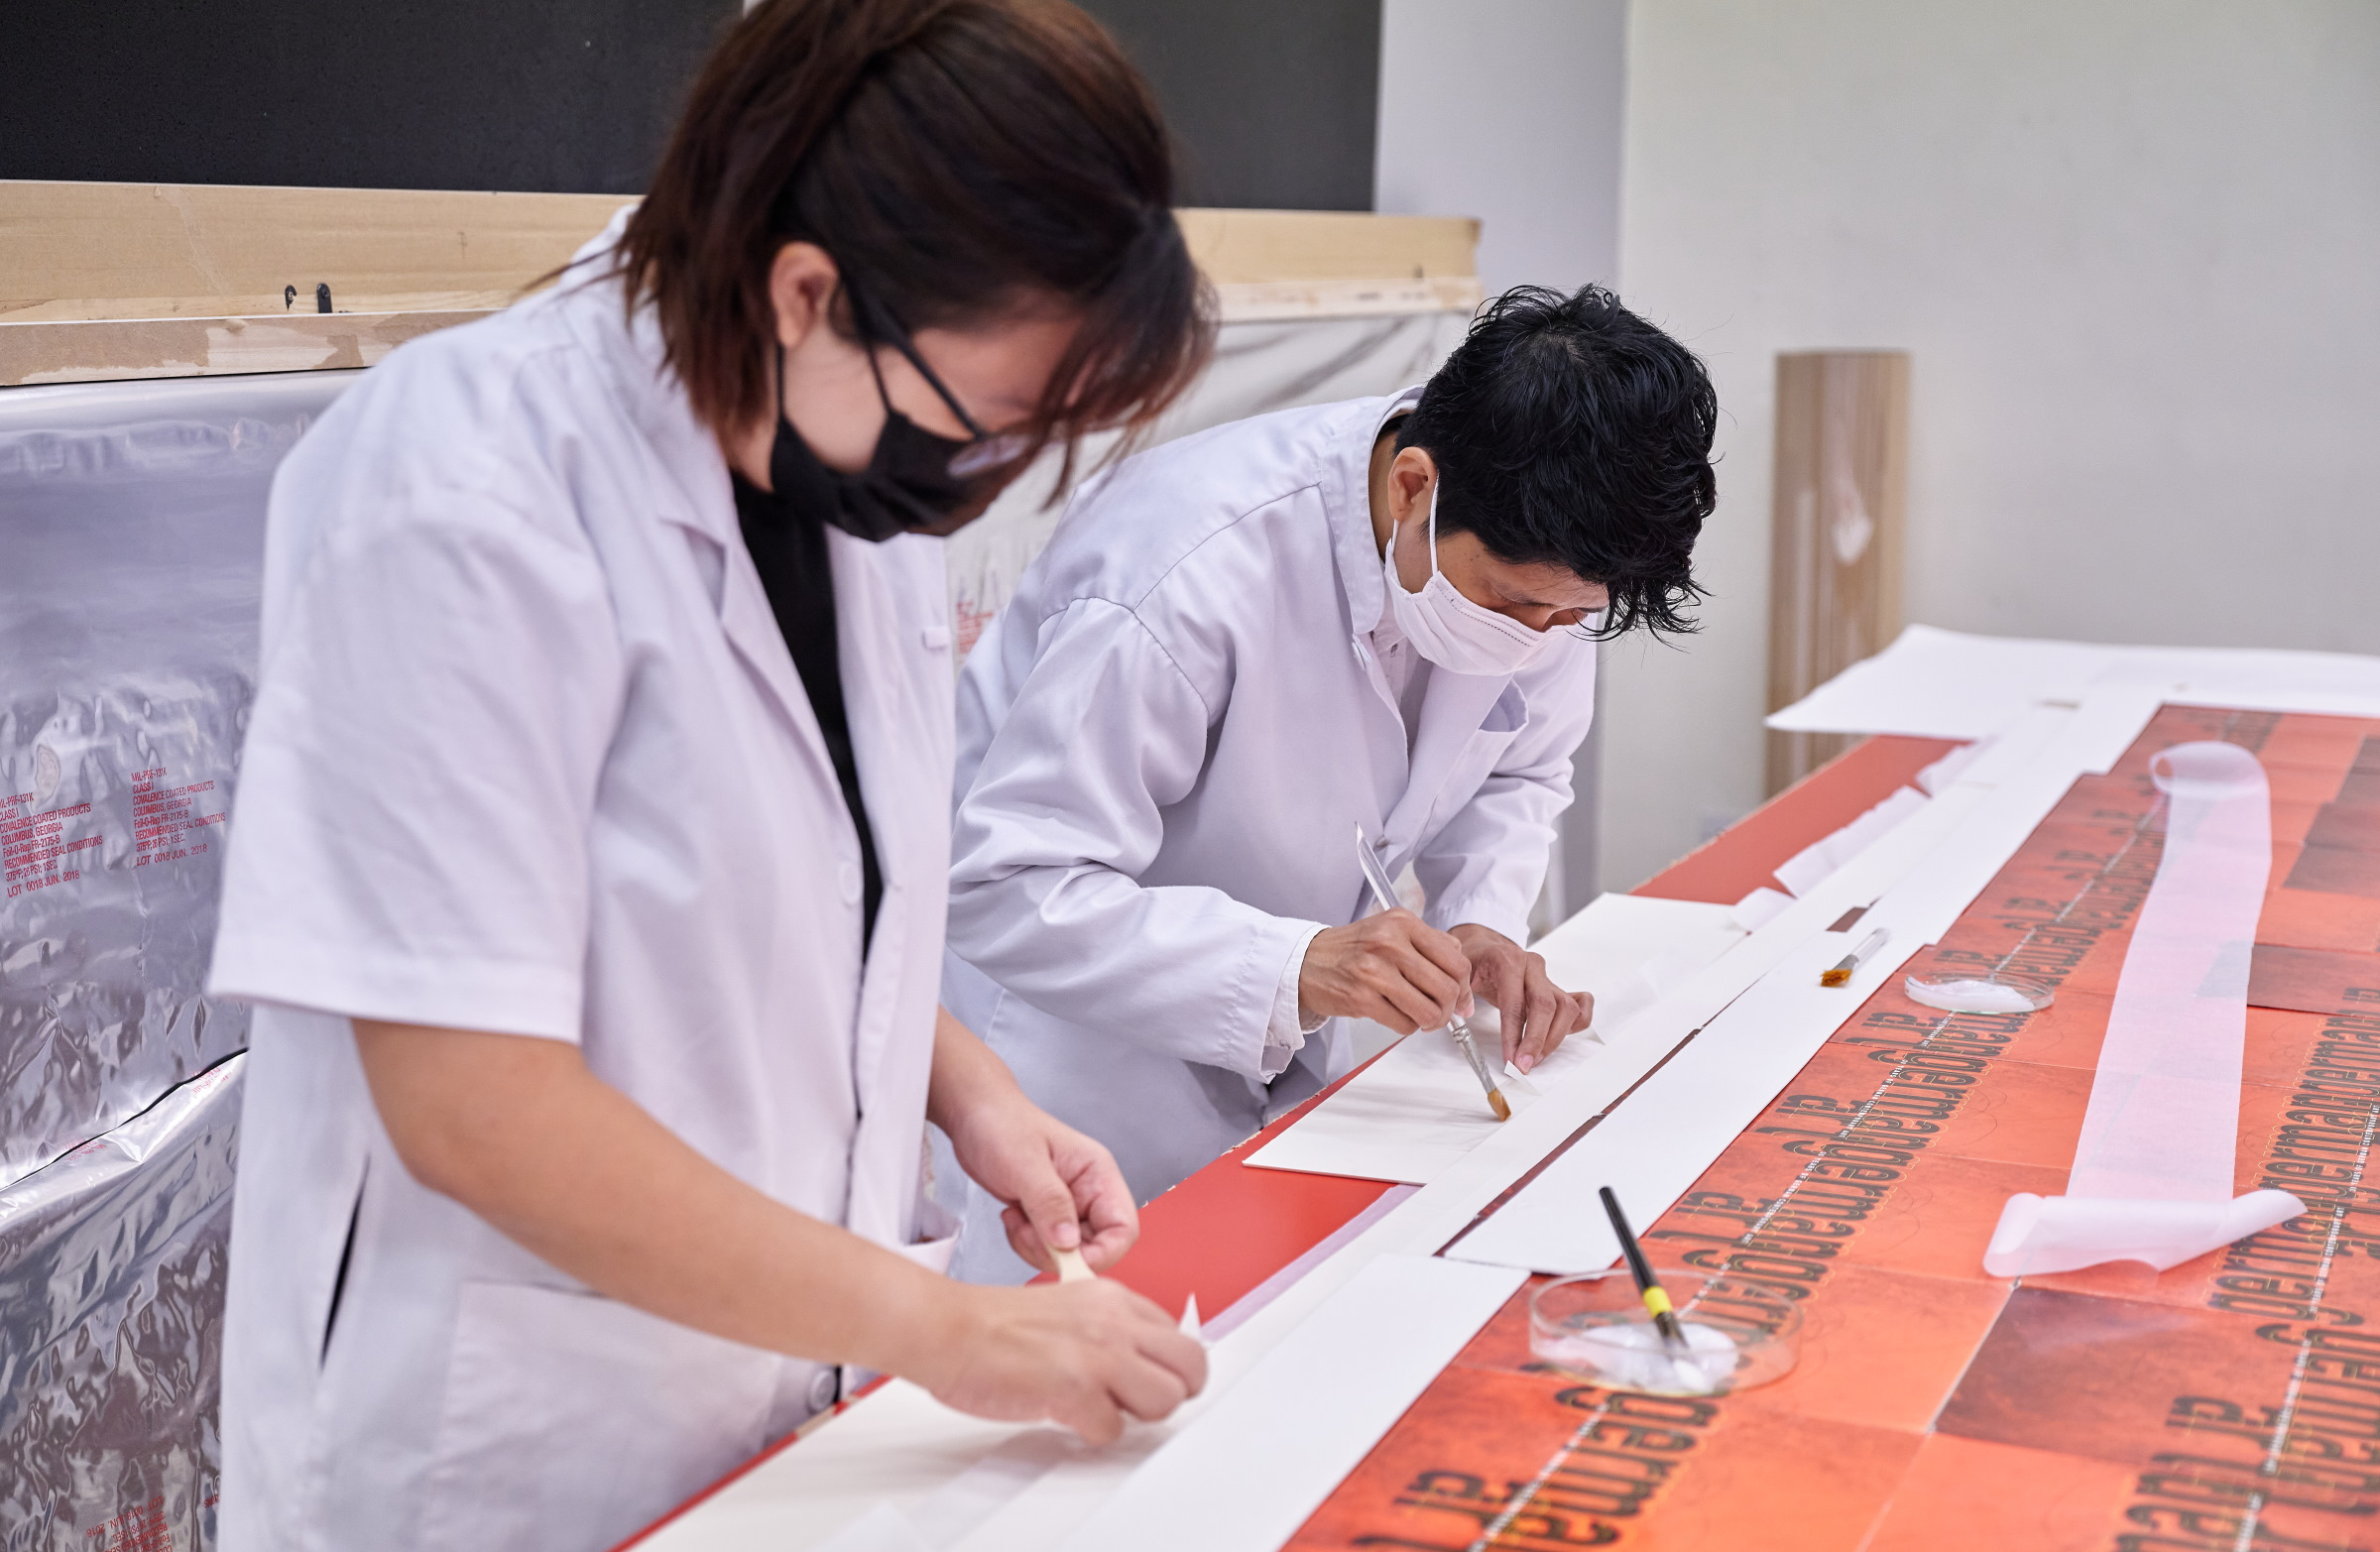 Uncover The Secrets Behind Heritage Conservation In NHB's New Travelling Exhibition